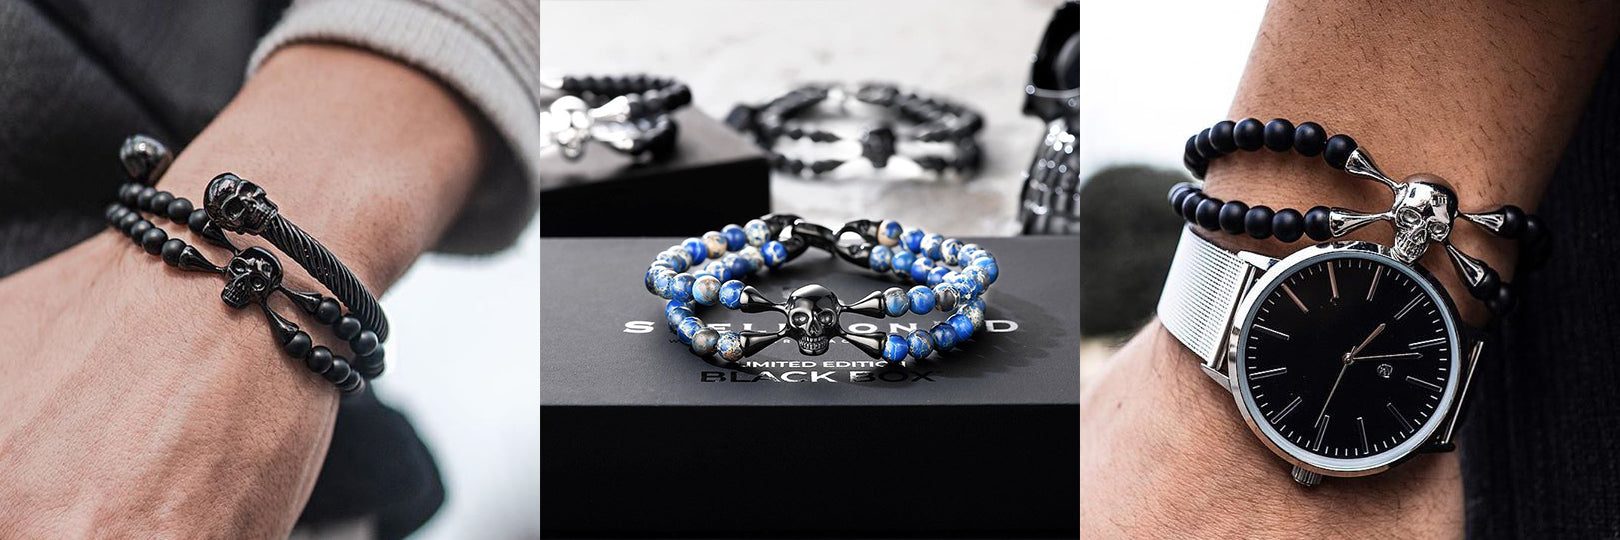 SpiderHD Skull Bracelets by SkeletonHD